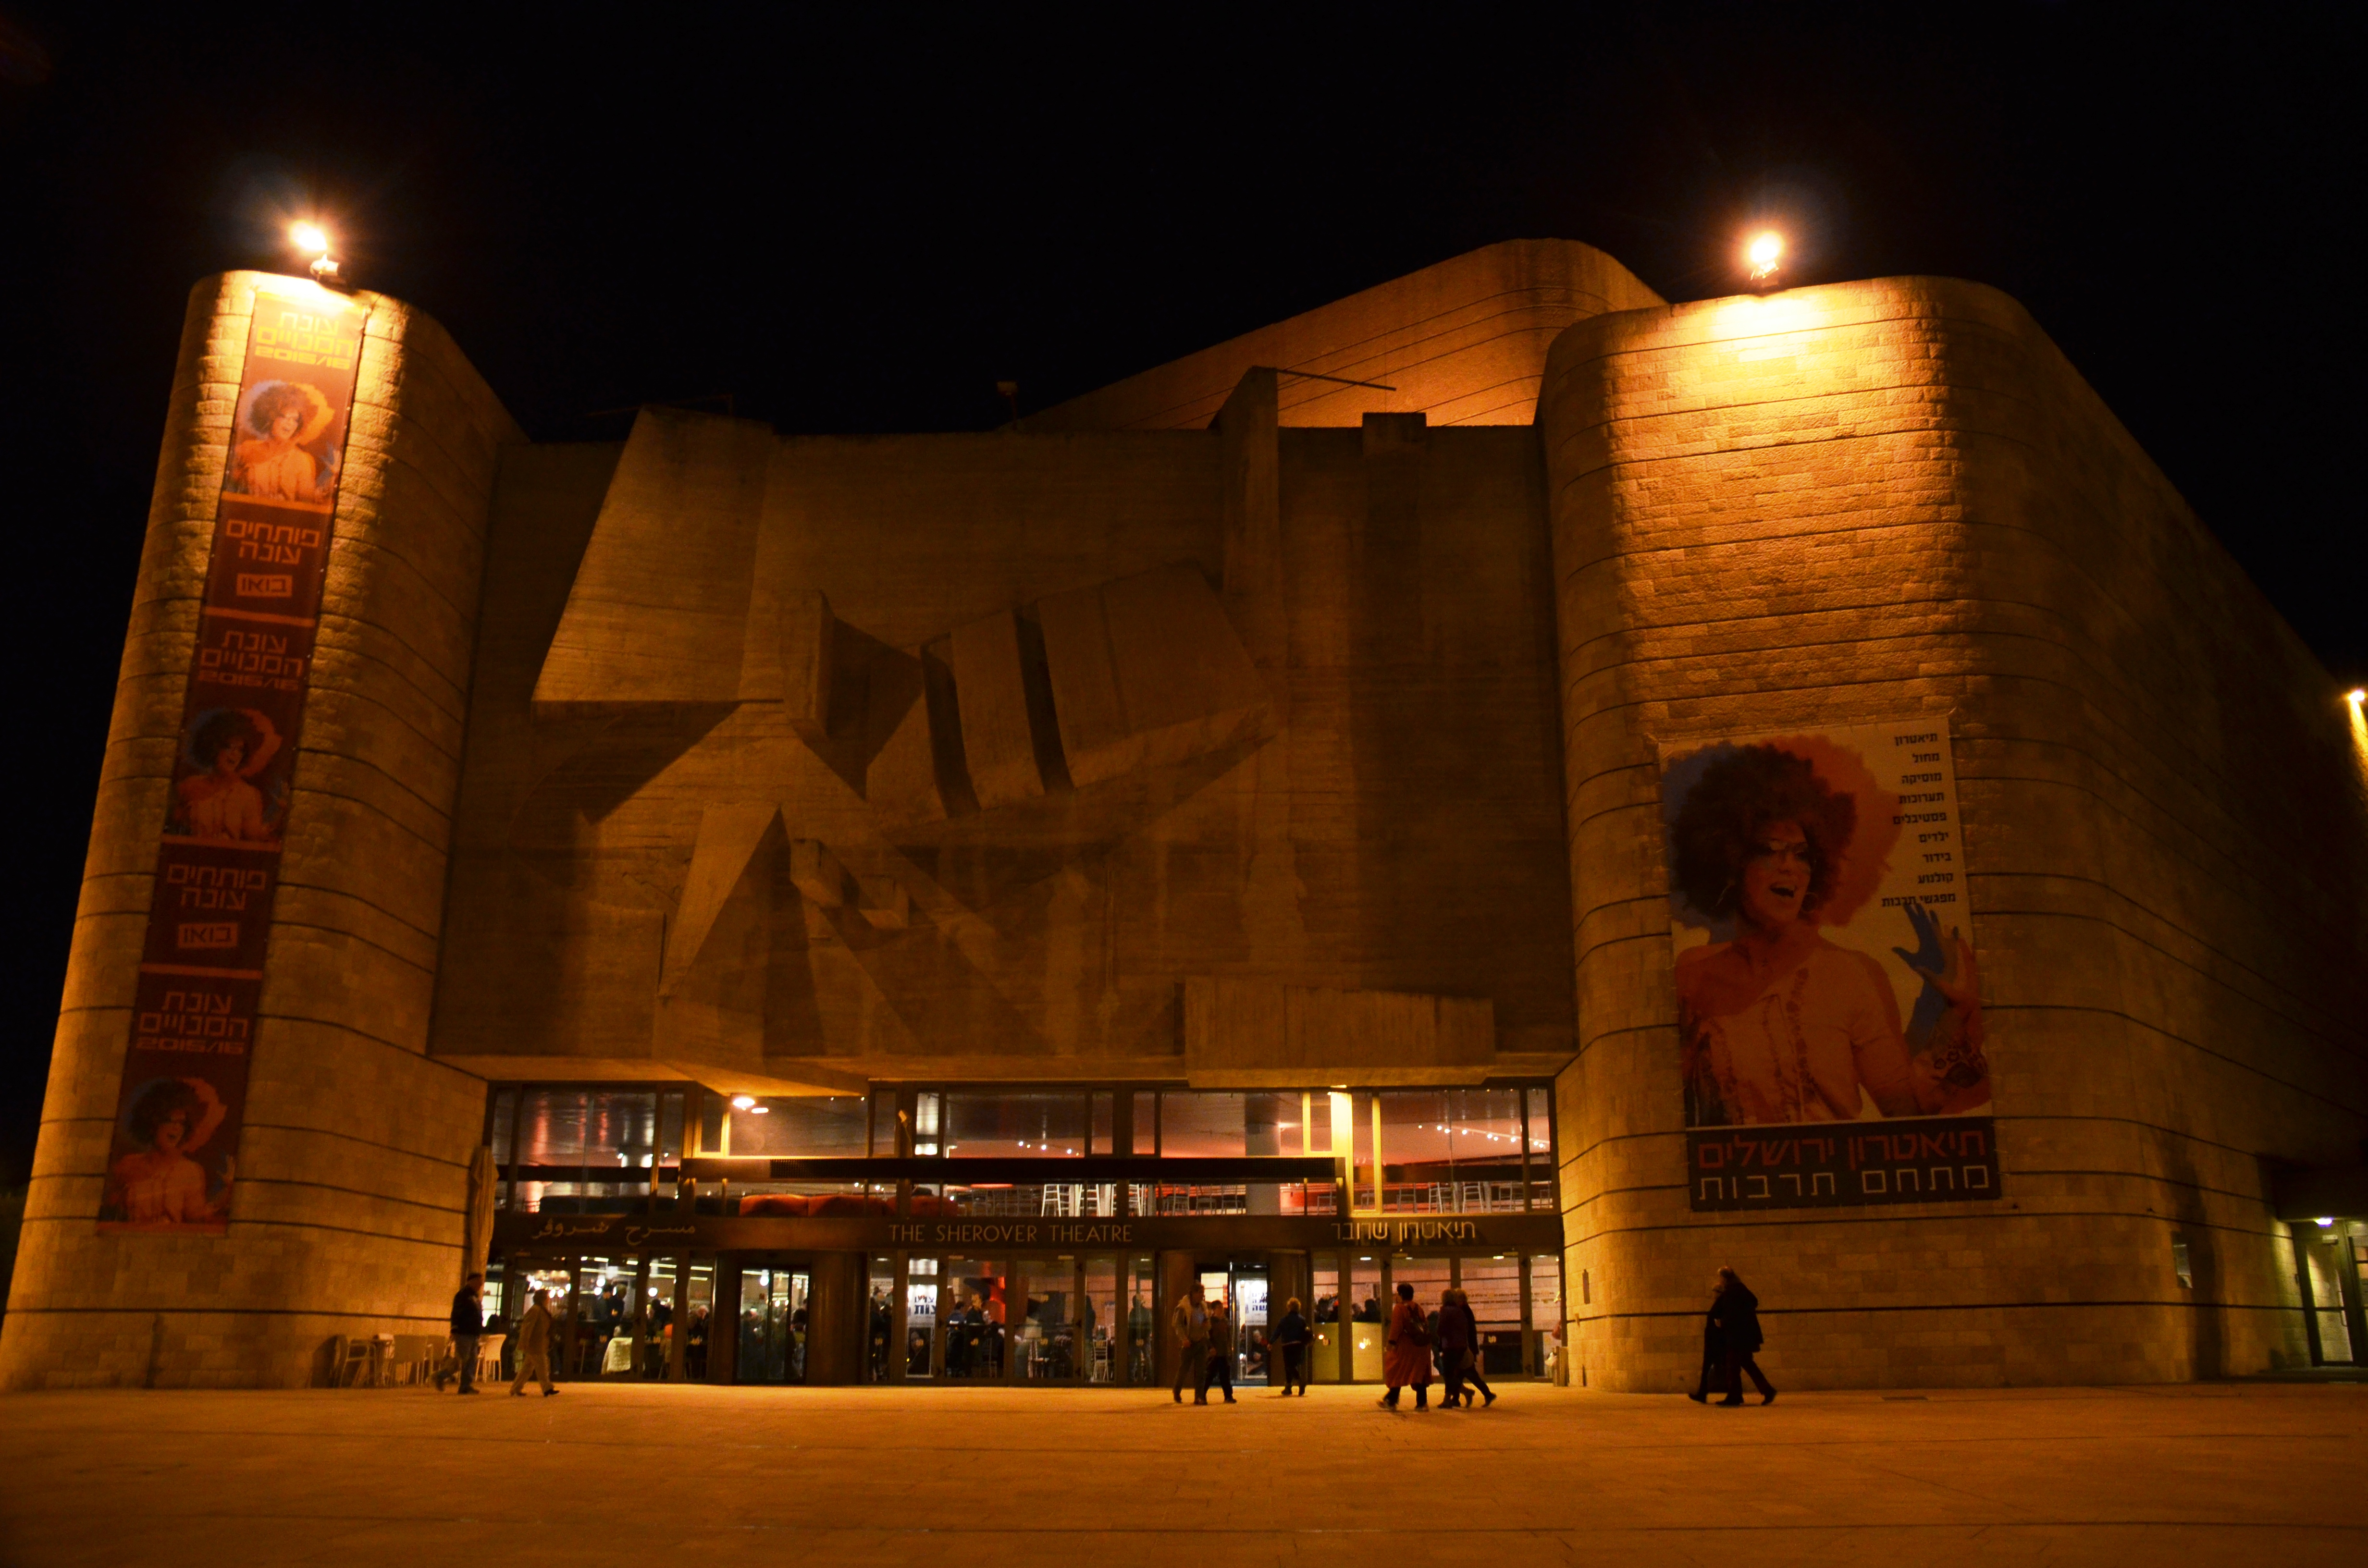 Jerusalem theater night outside